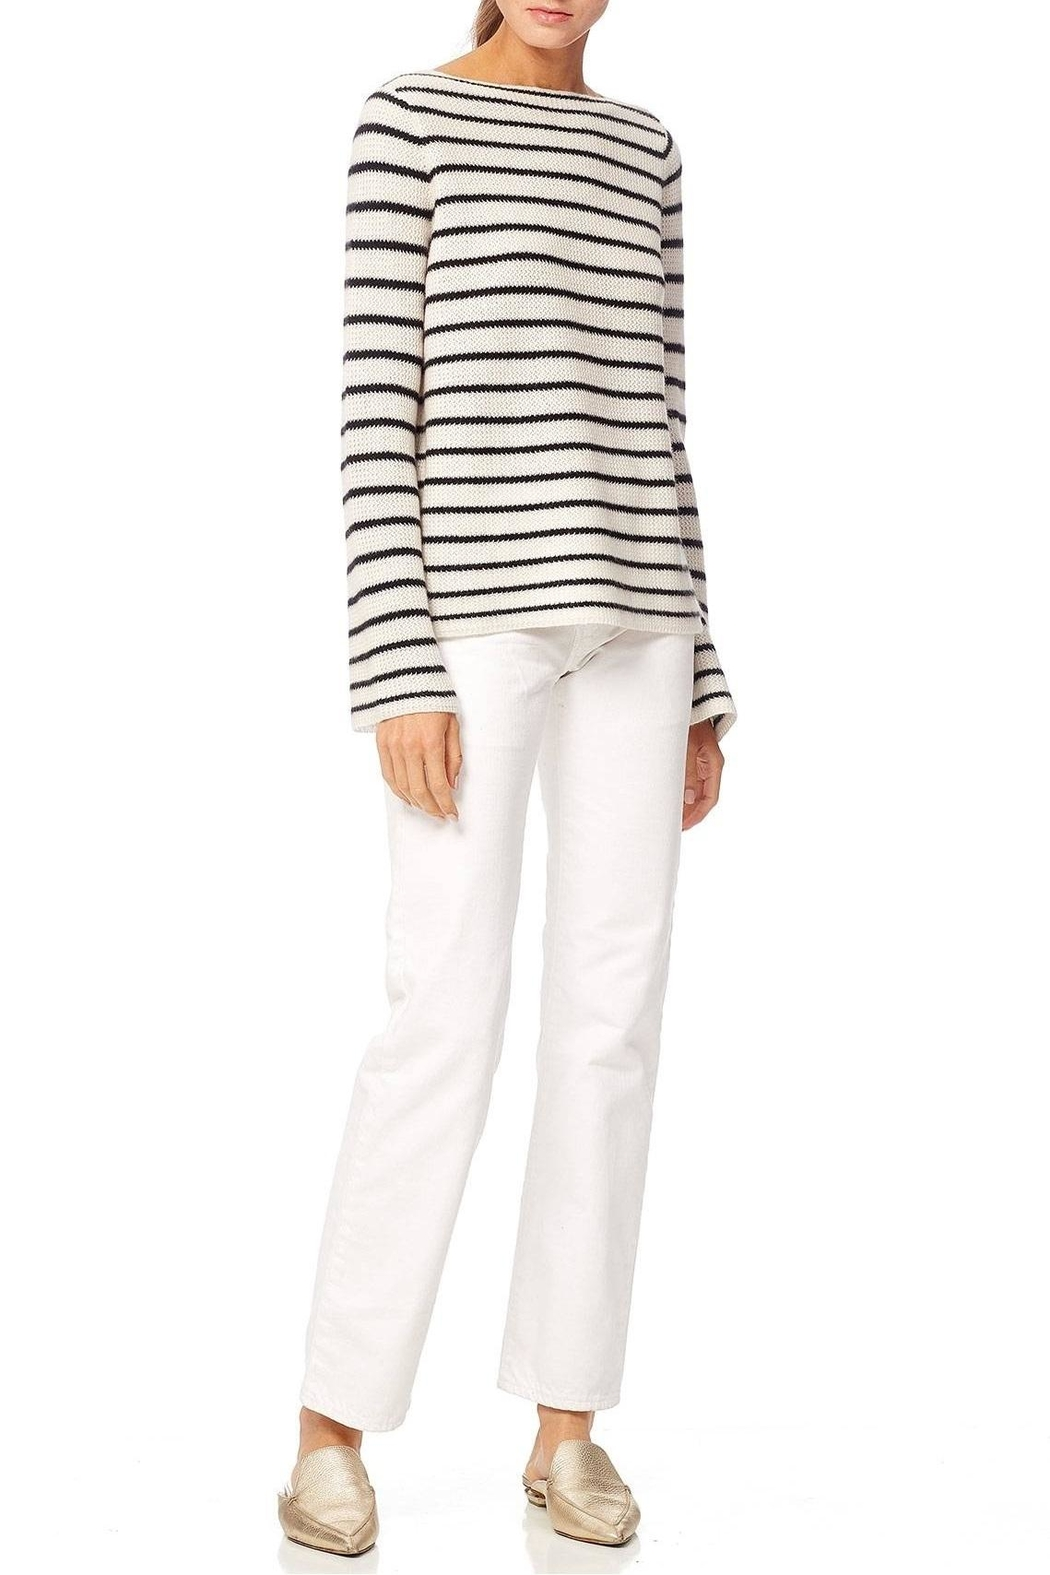 360 Cashmere Faye Sweater - Side Cropped Image